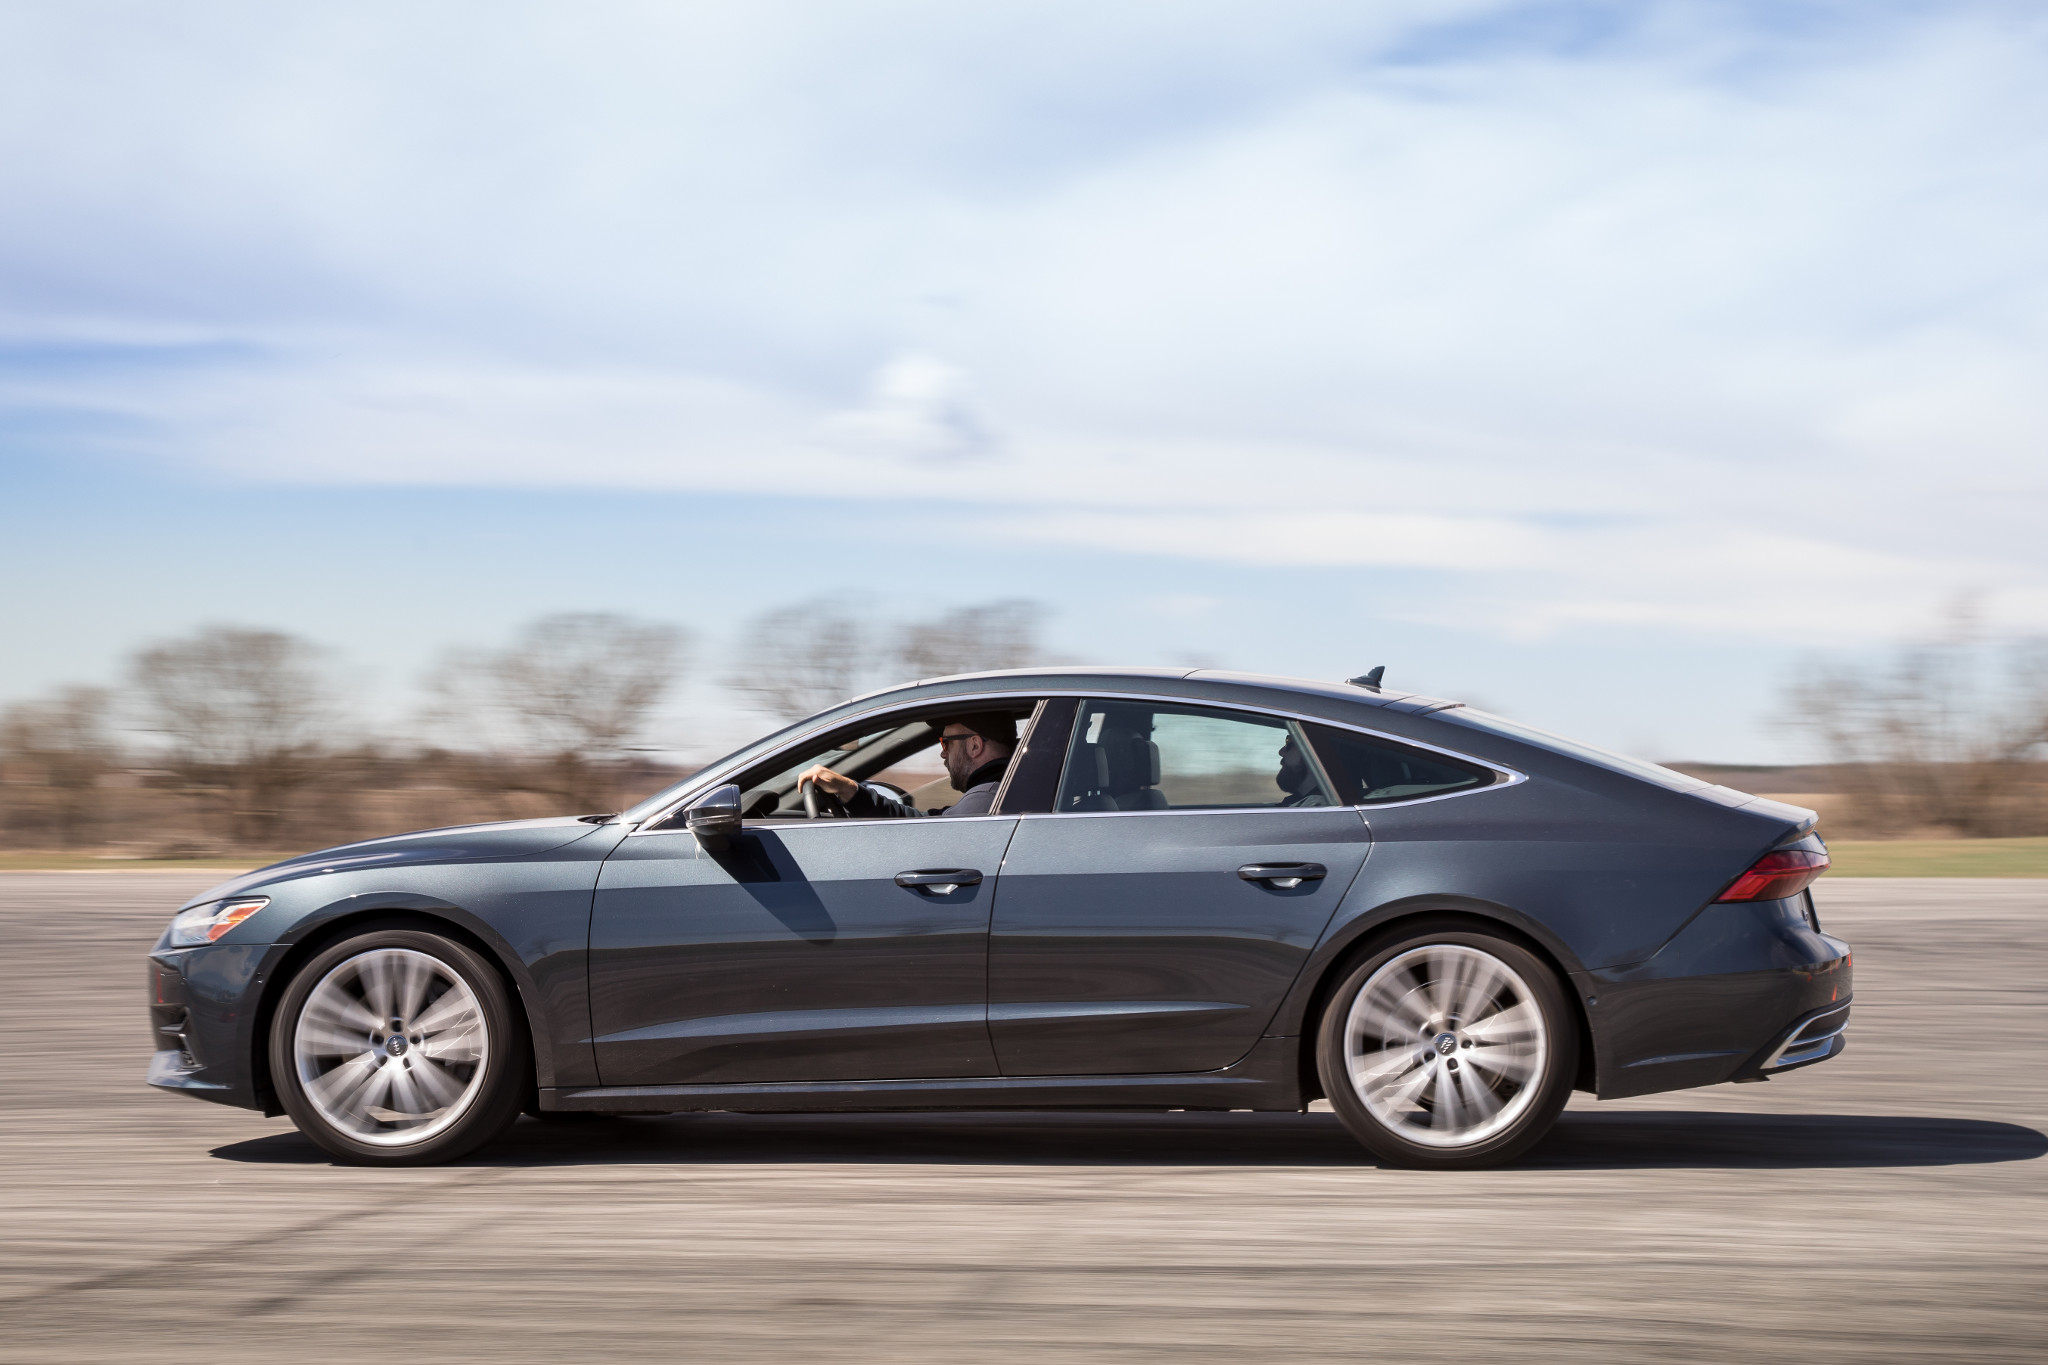 2019 Audi A7: Everything You Need to Know